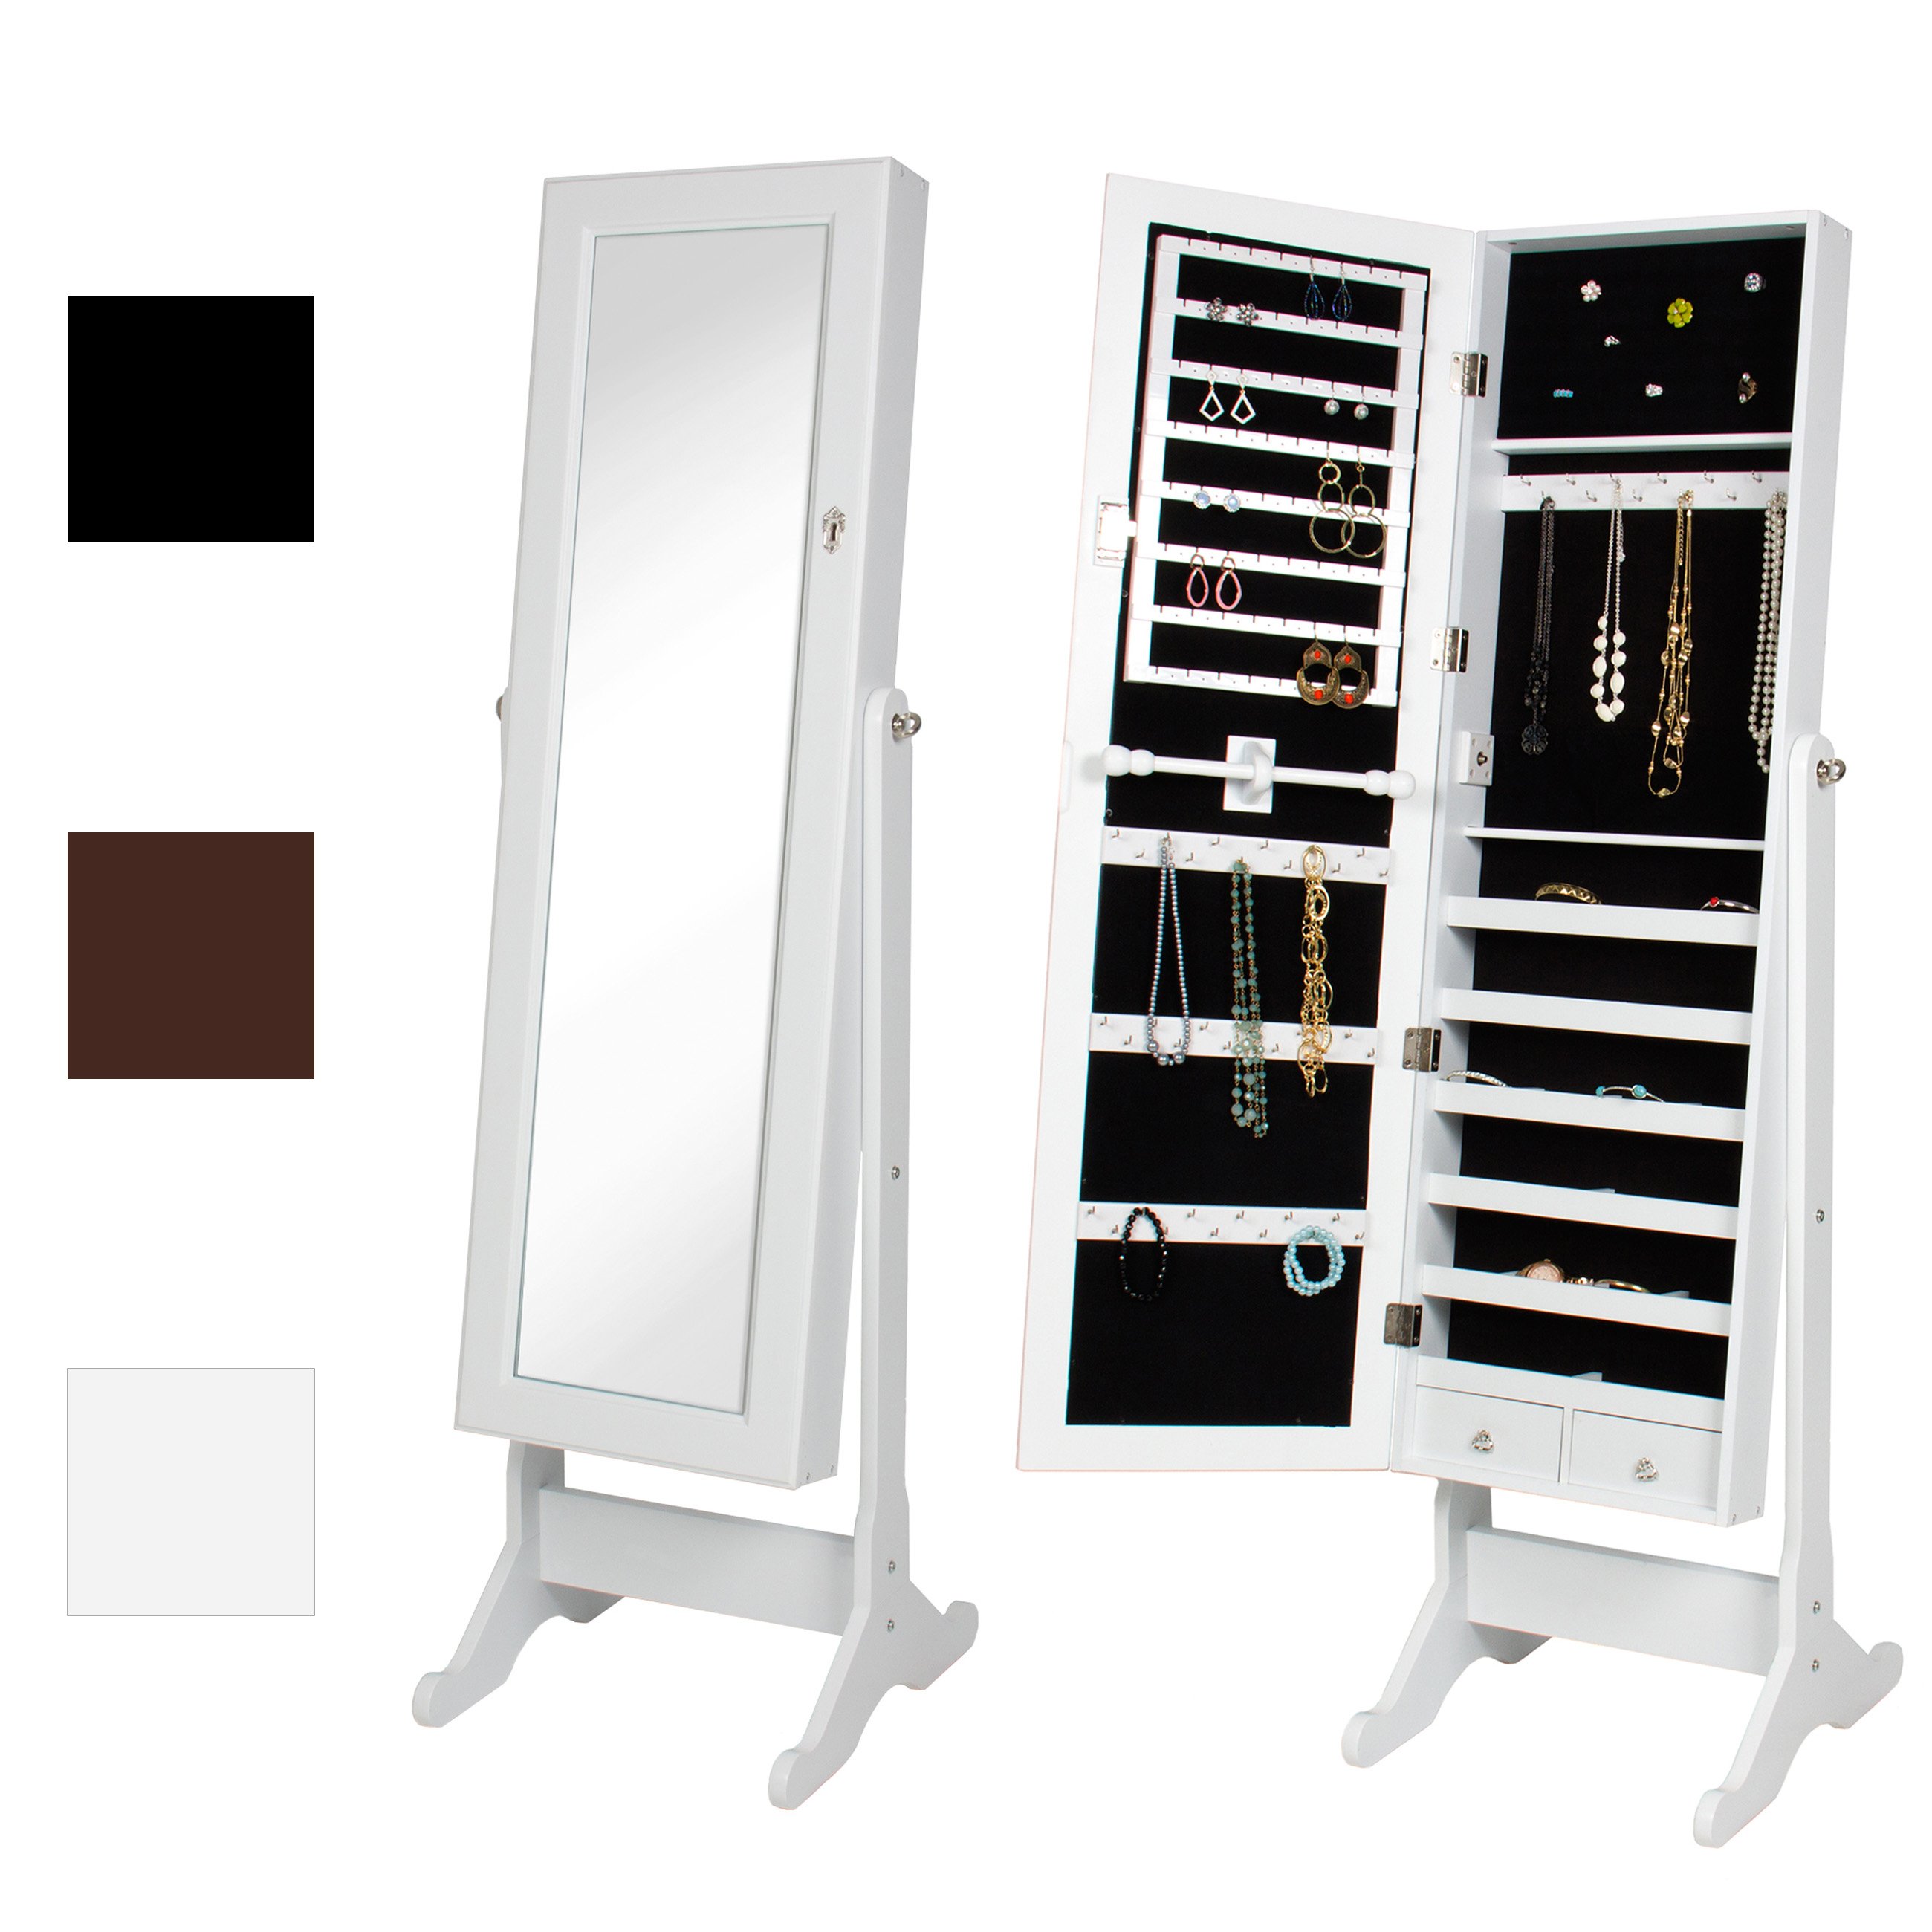 Mirrored Jewelry Cabinet Armoire W/ Stand Mirror Rings, Necklaces, Bracelets